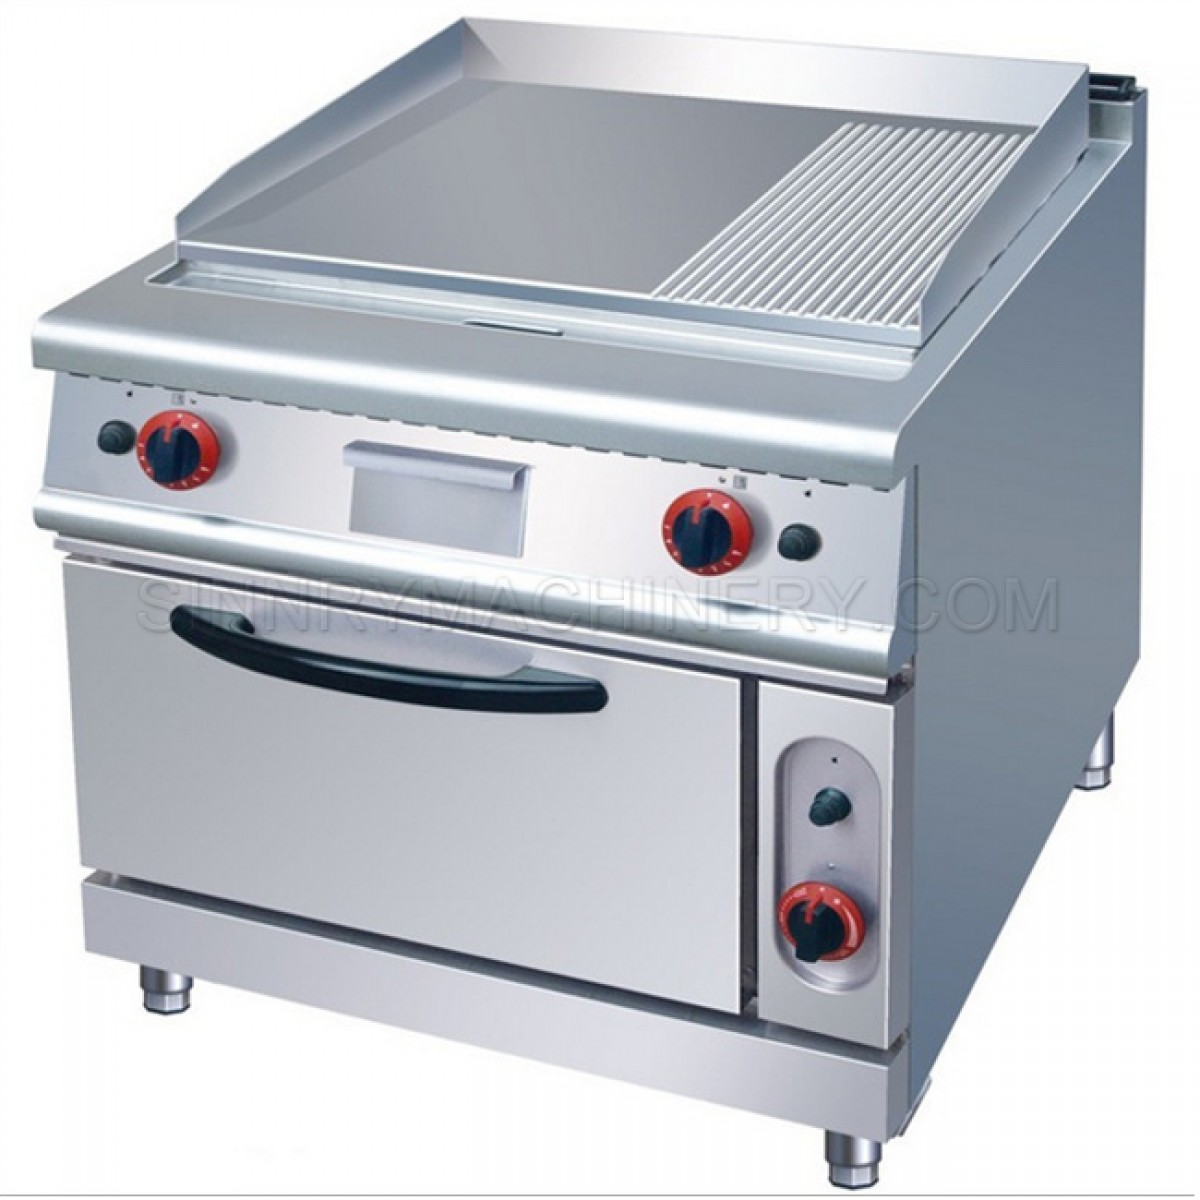 Griddle with Oven - Gas, 17.6 KW, SN-CRG104B